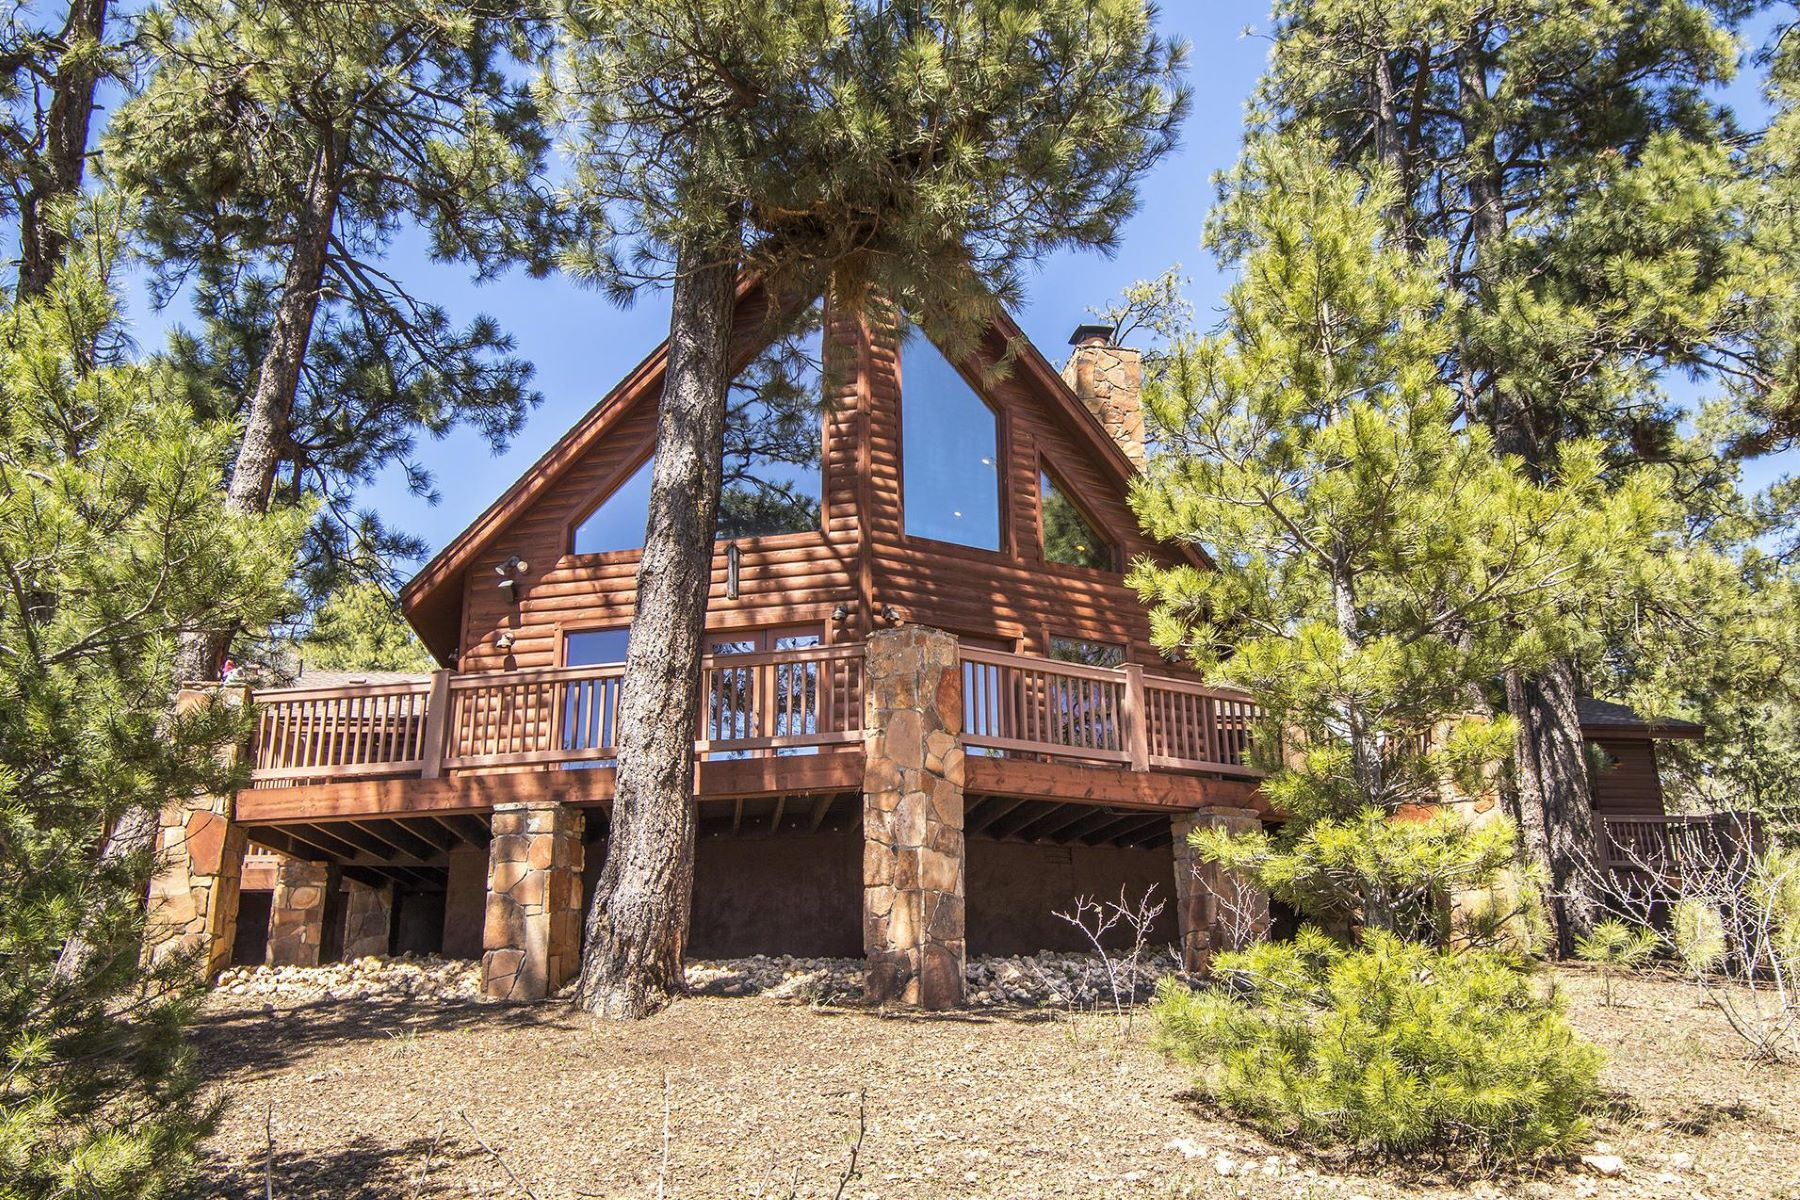 Single Family Homes for Active at Highland Meadows 1155 Highland Meadow Road Flagstaff, Arizona 86001 United States